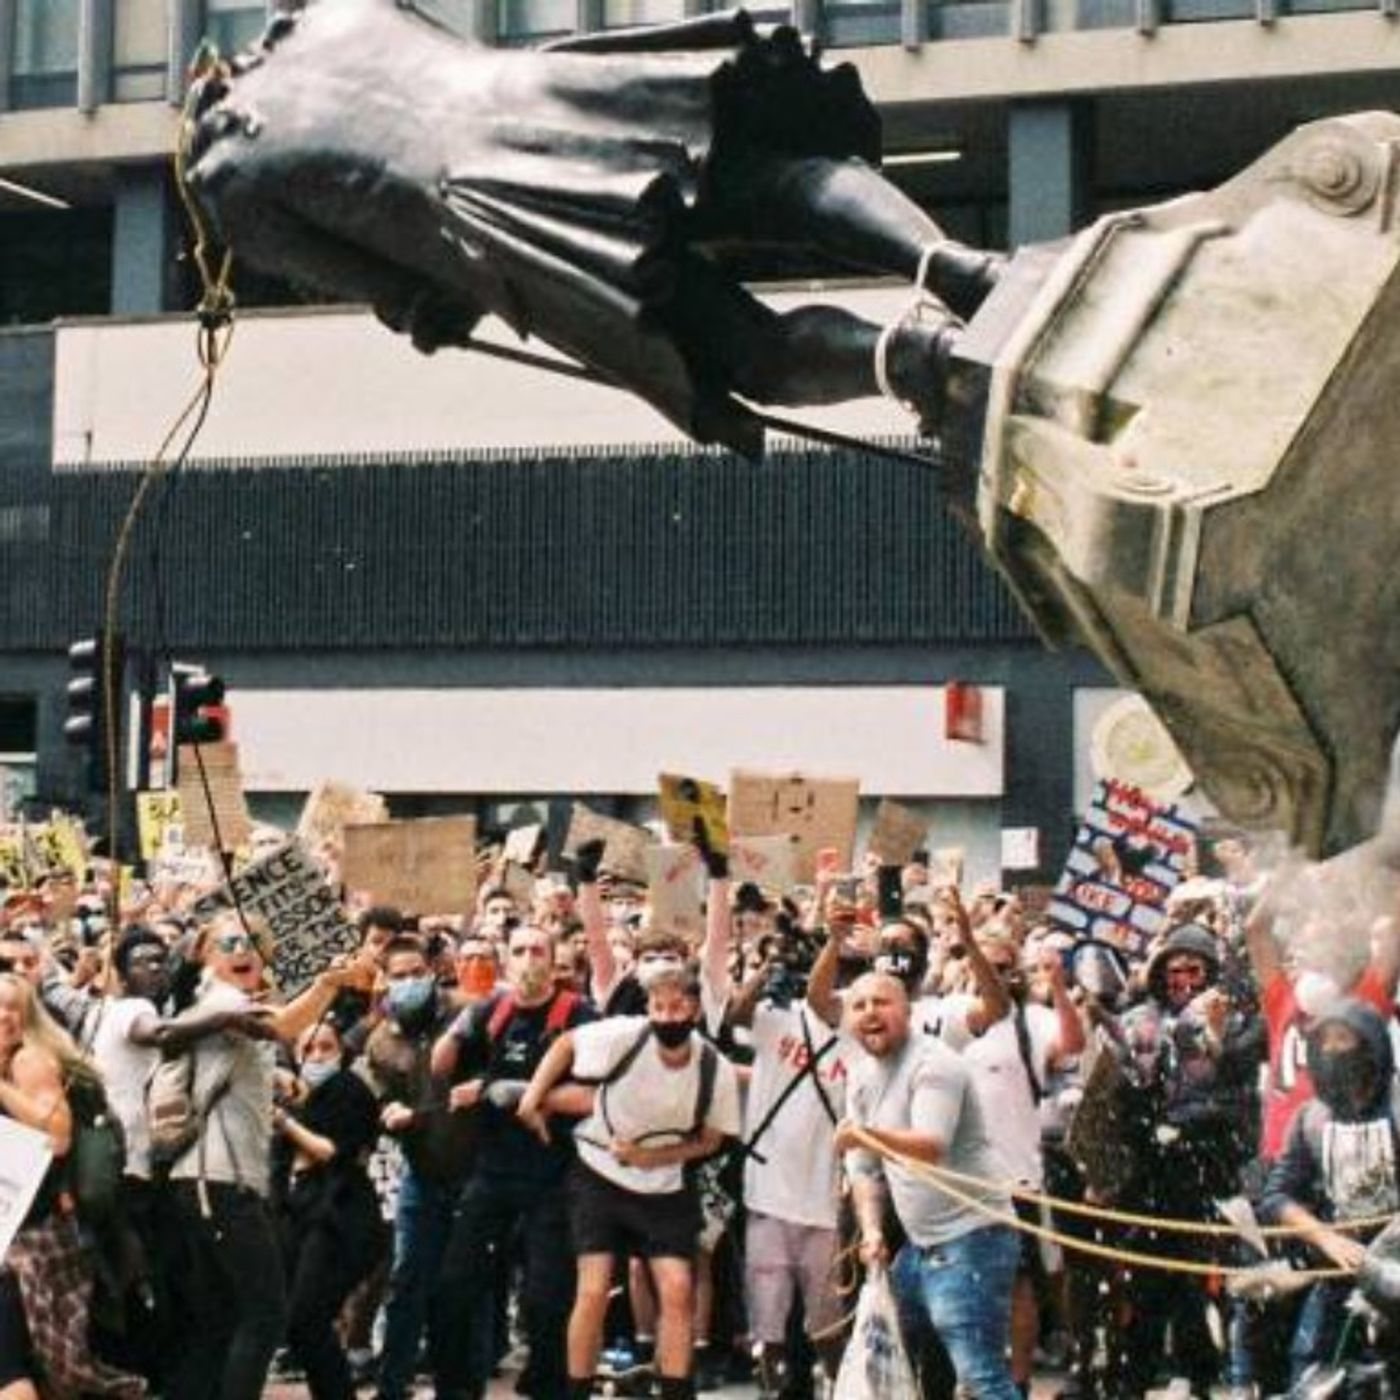 POLICY AND PRACTICE - How should we deal with statues of racists and what should we do in our public space instead?